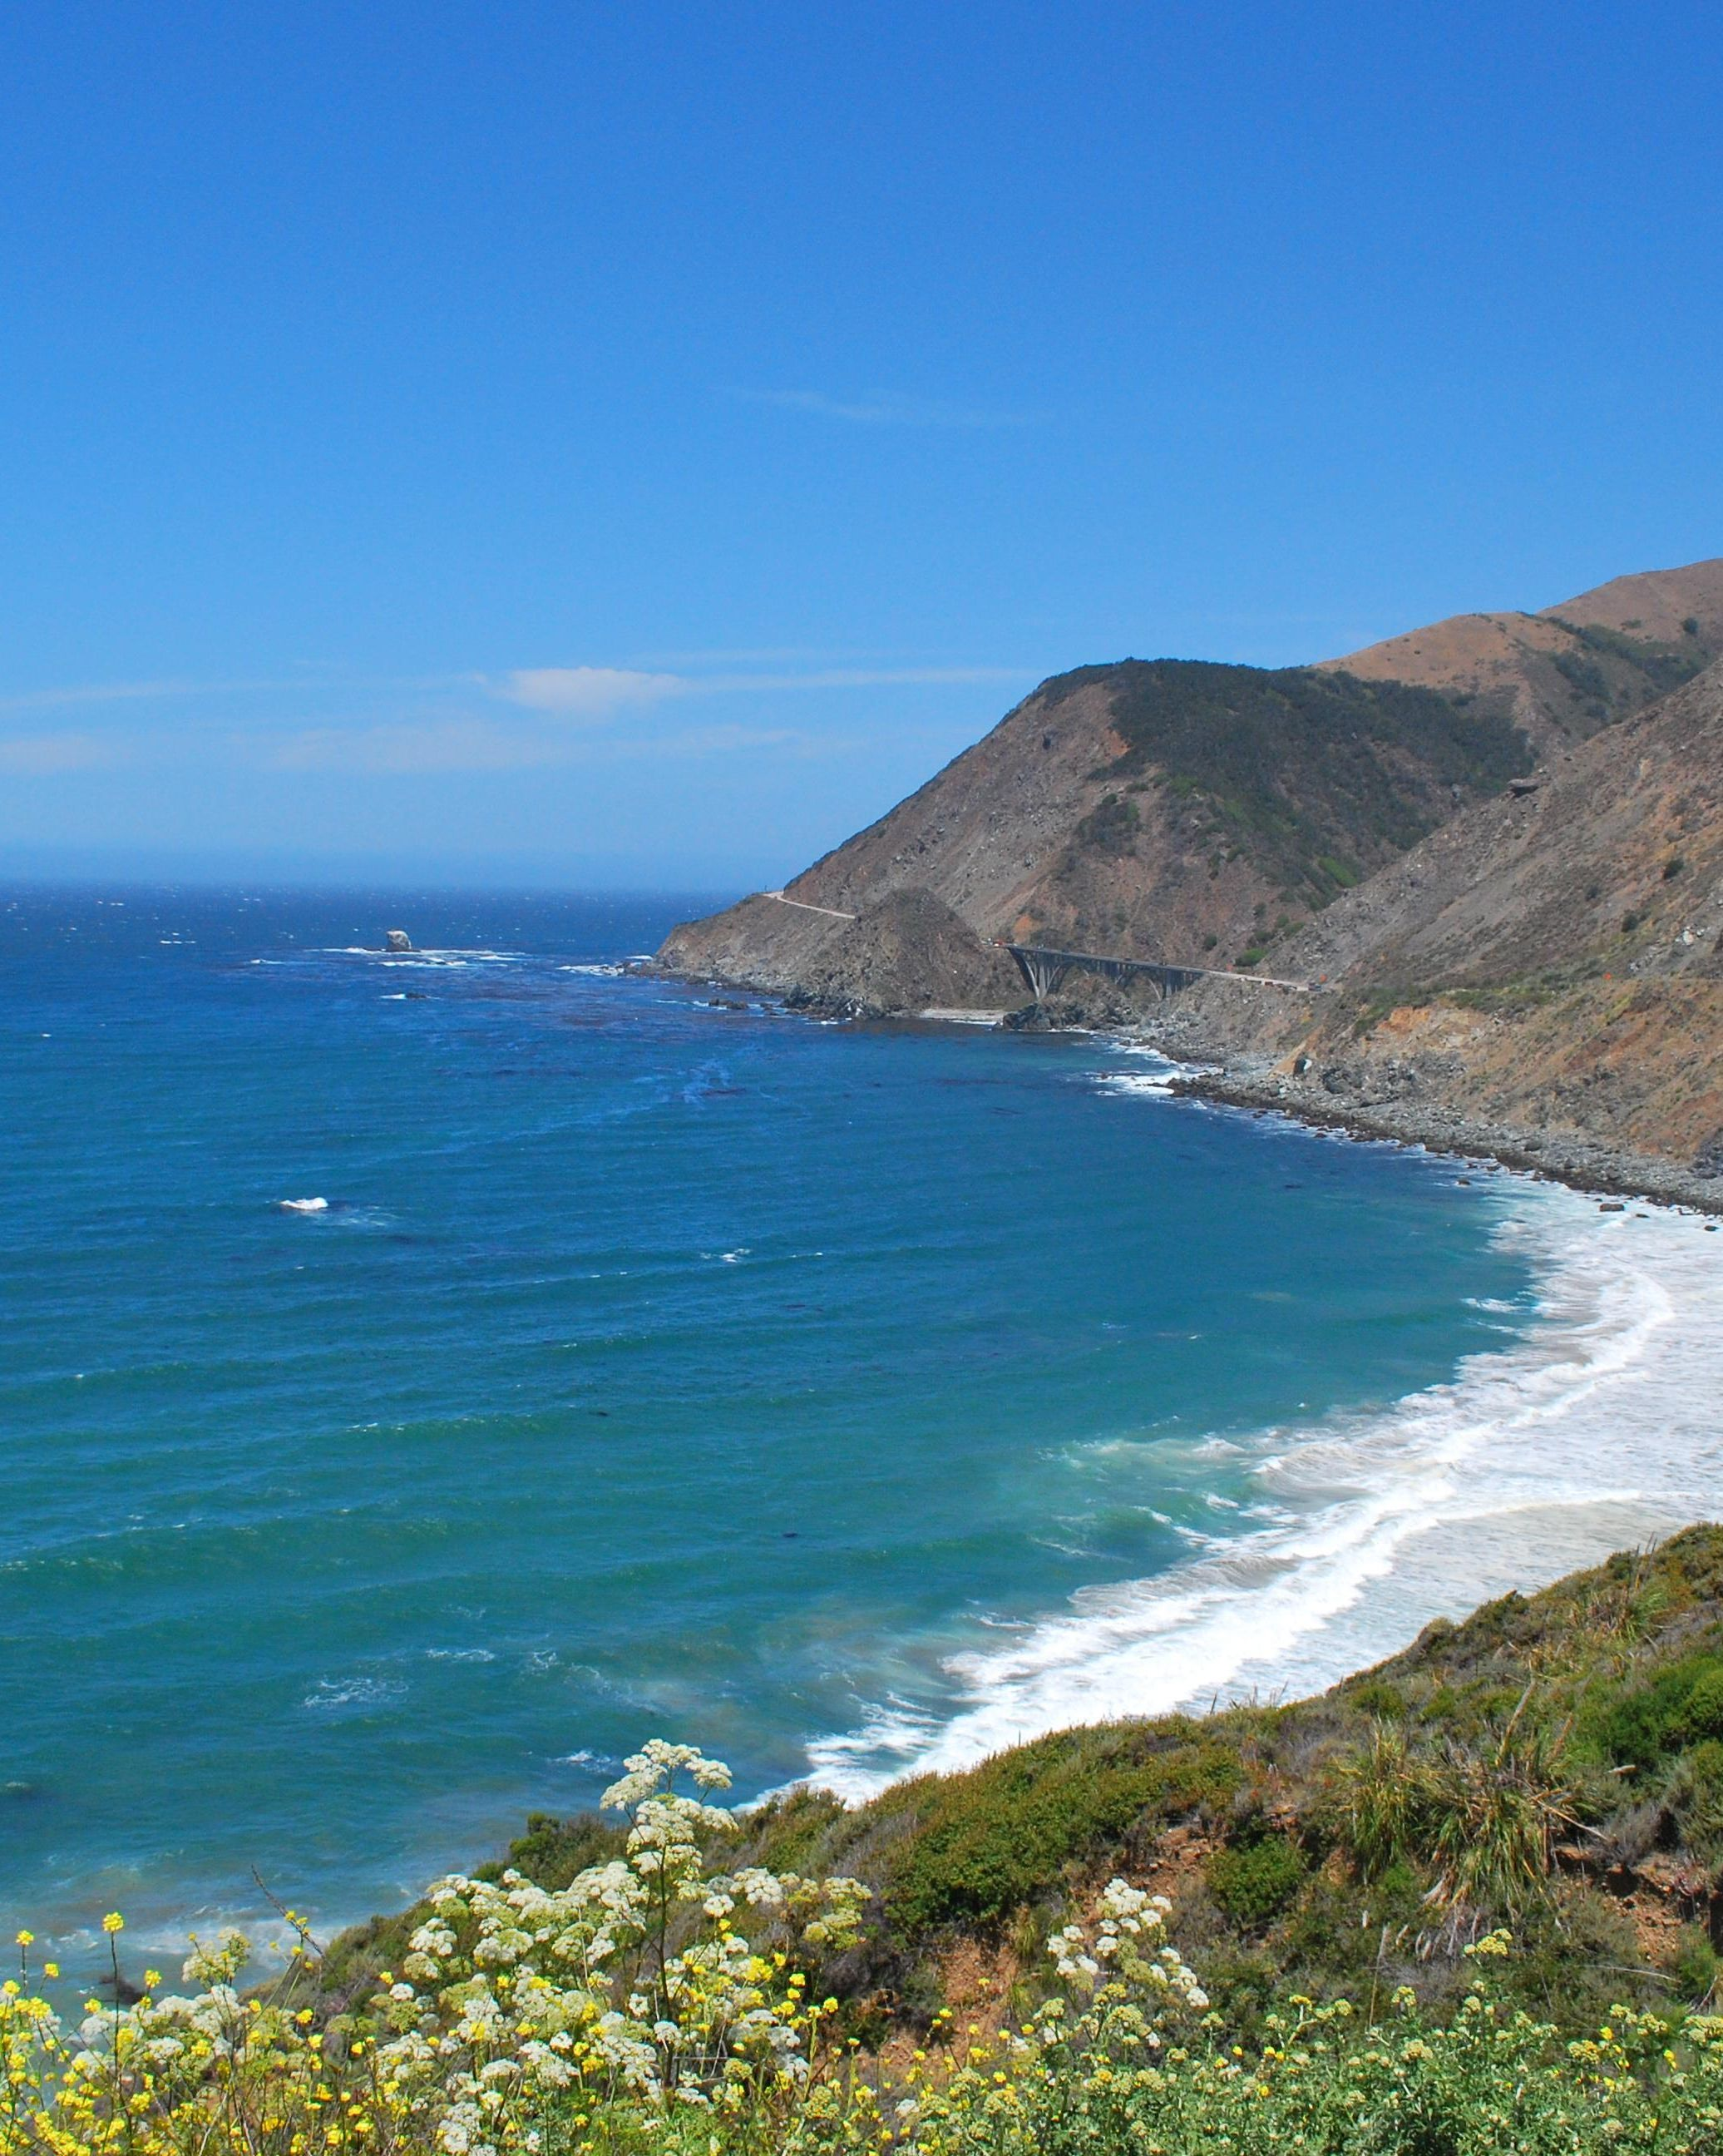 "{""user_id"": 17592392202846209, ""created_at_utc"": 1466634815, ""downvotes"": 0, ""is_community_pin"": true, ""score"": 9, ""details"": ""Somewhere off the PCH in Big Sur, CA [3872 x 2592] (OC)"", ""upvotes"": 9}"